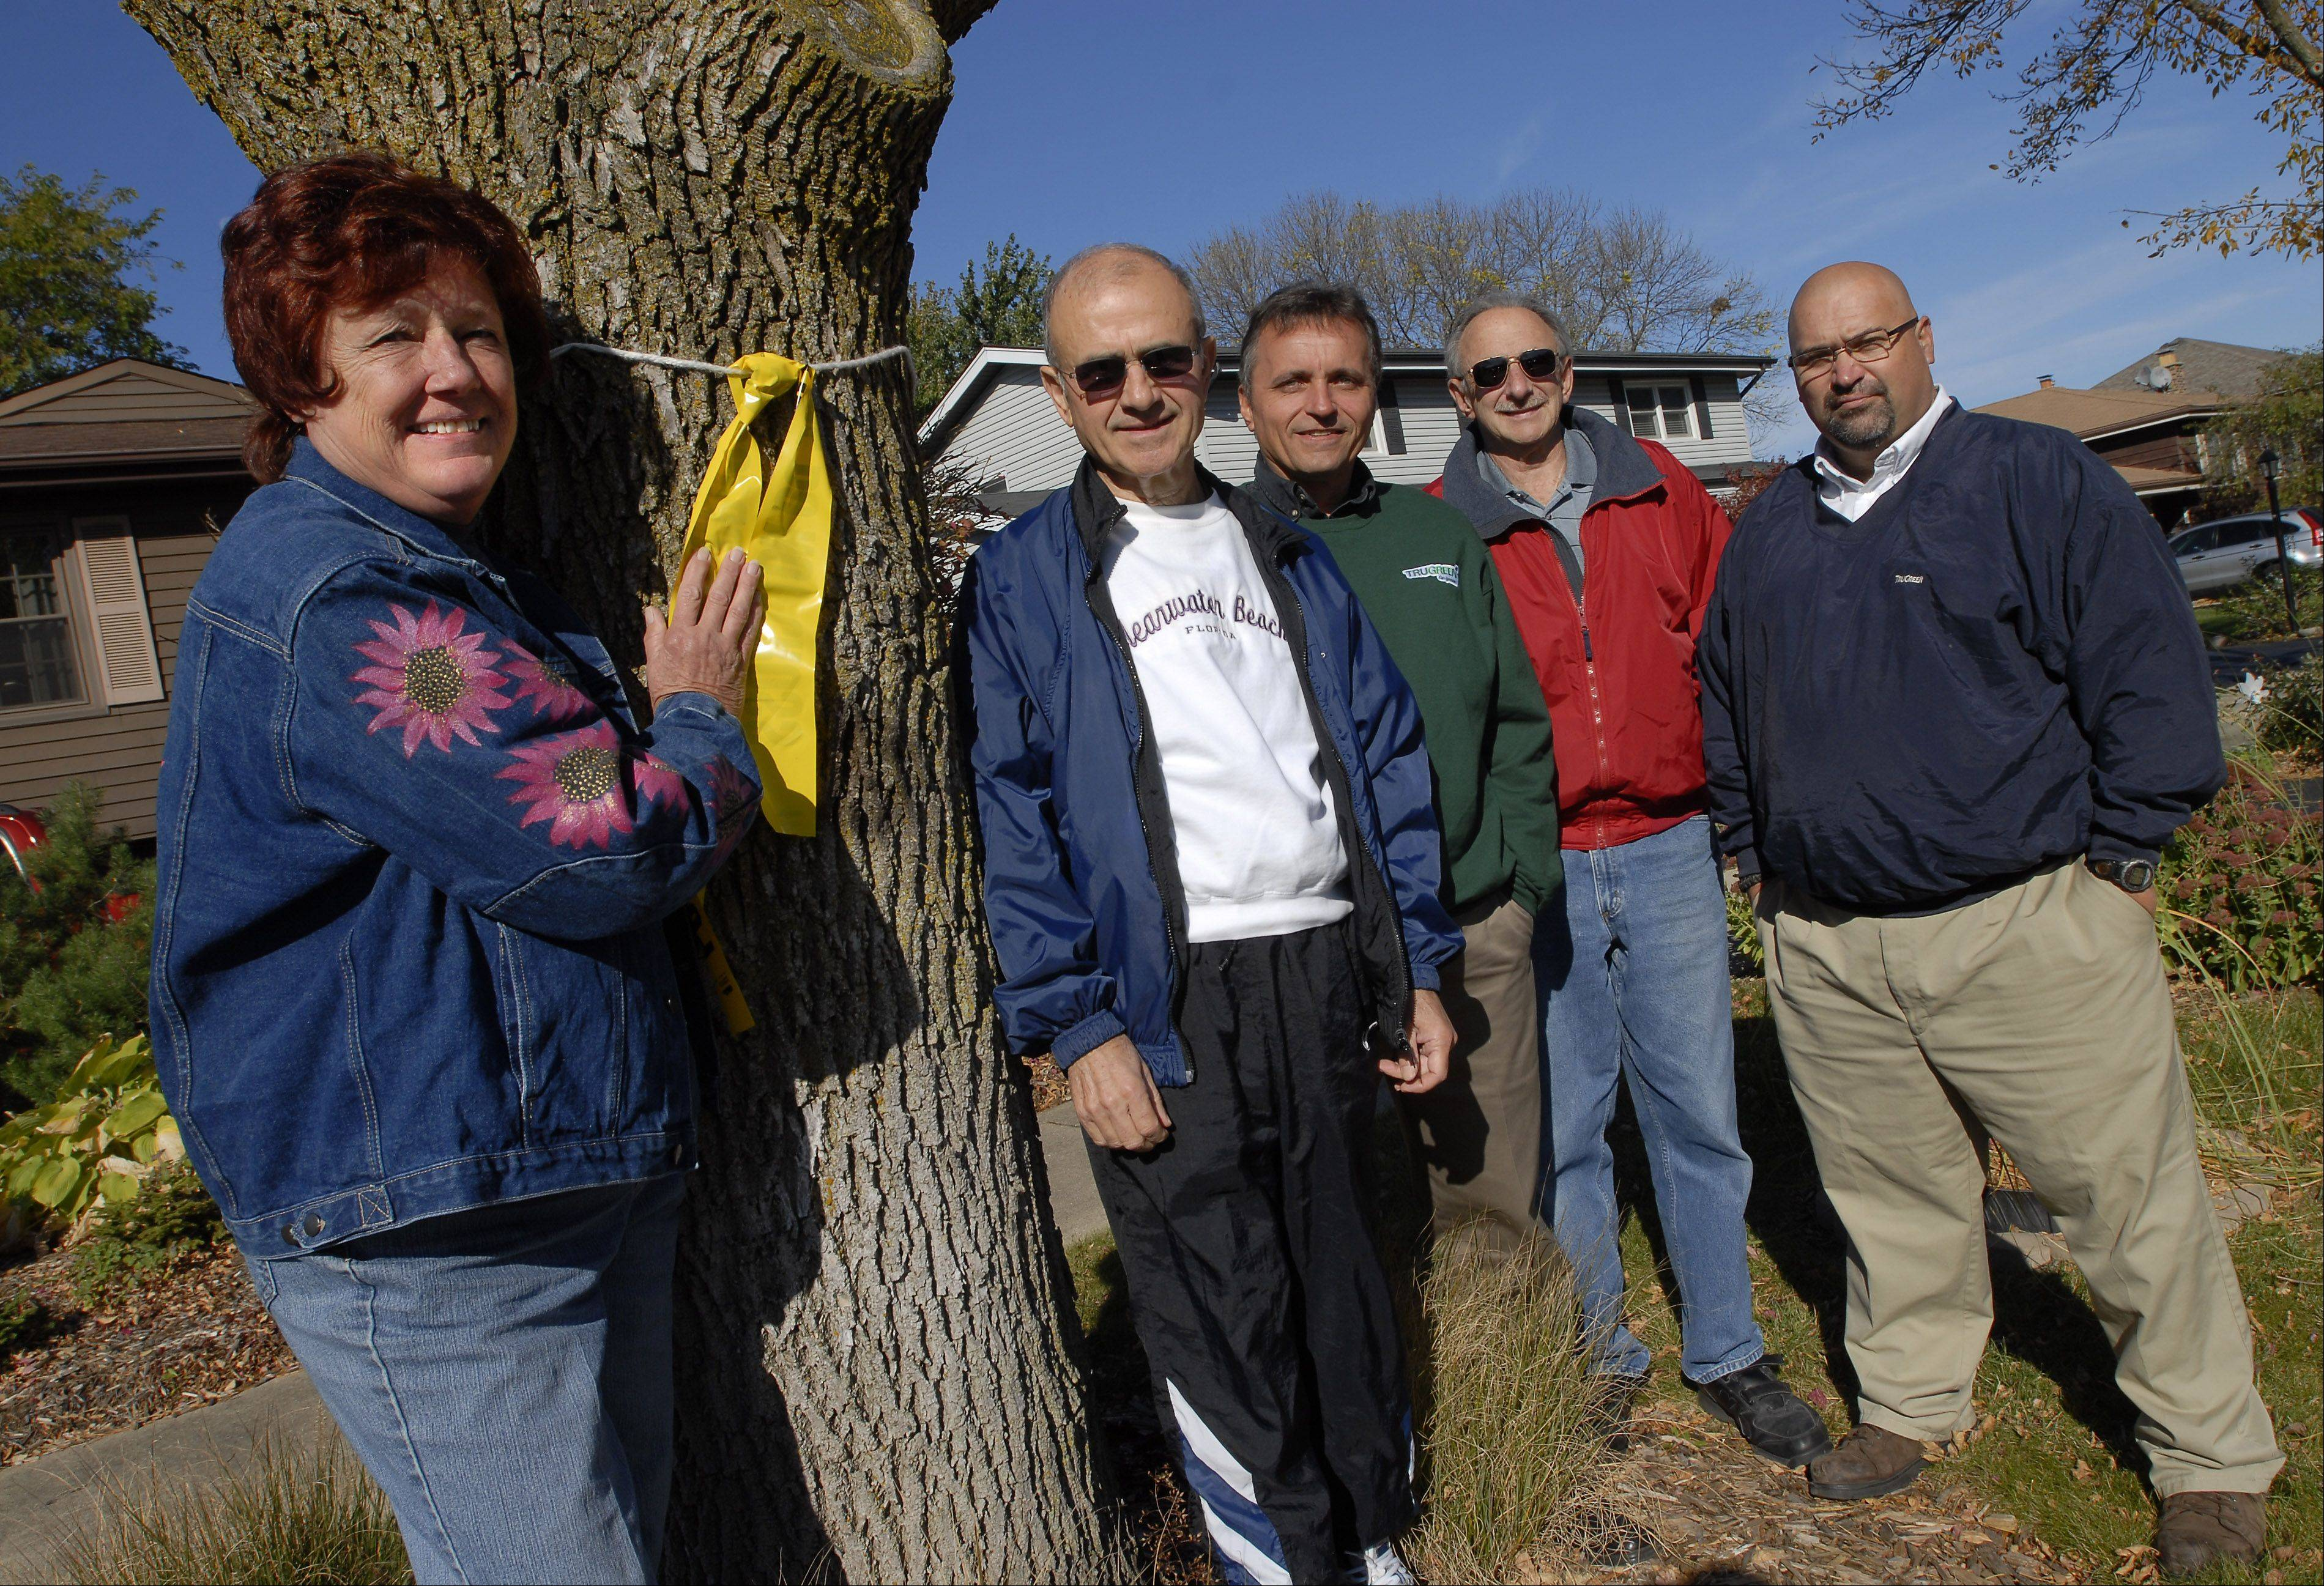 Carrie Brooks, left, of Mount Prospect, stands by the ash tree that has been in her front yard for the 15 years she has lived on Grace Drive. Brooks launched an effort on her block to protect ash trees against the emerald ash borer. Joining her are, from left, neighbor Frank Russo, TruGreen commercial sales manager Frank Skoria, her husband Dennis Brooks, and TruGreen field service manger and arborist Mark Cloud.